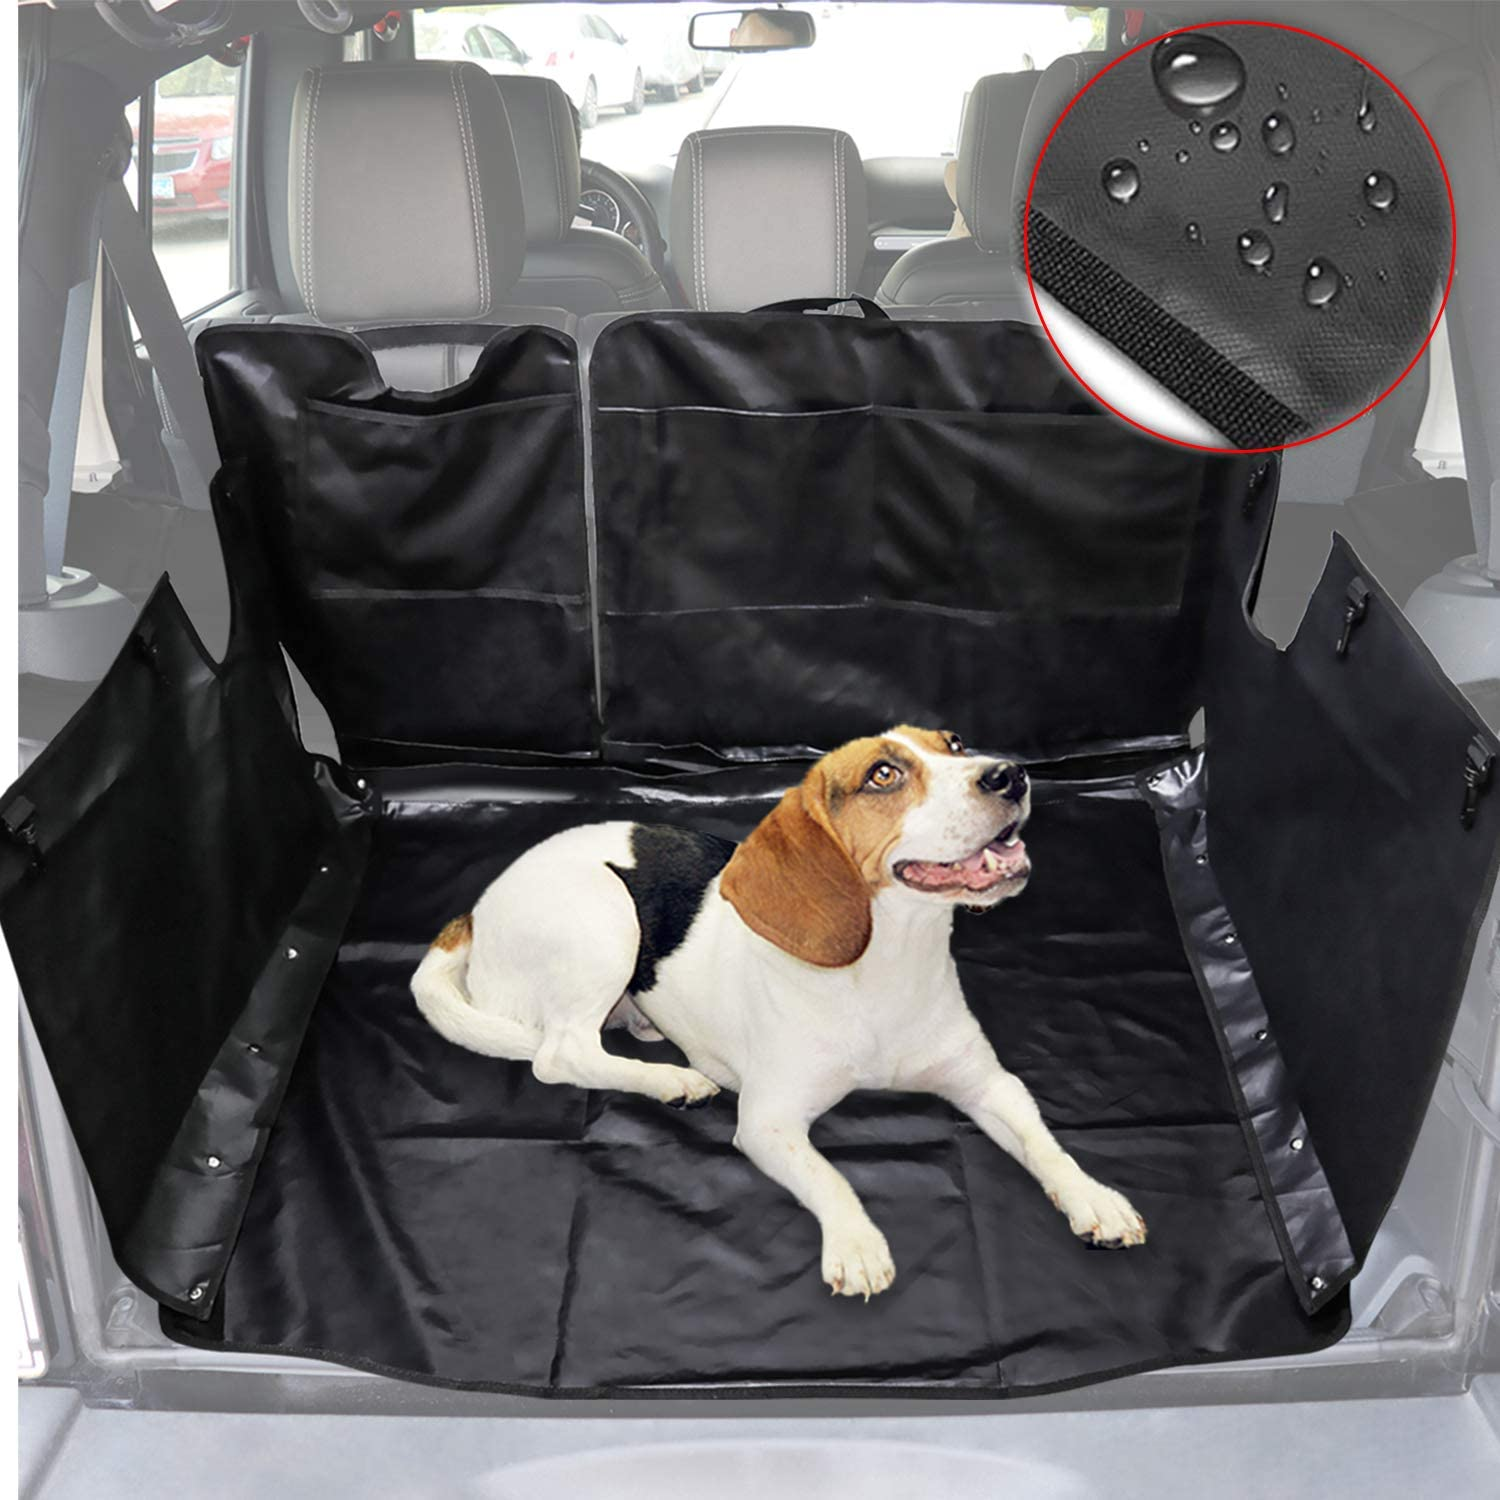 Camoo for Jeep Wrangler JL Waterproof Pets Seat Cover Dog/Cat Safety Mat Washable Rear Storage Cargo Liners Fits Jeep Wrangler JL JLU 4 Door 2018-2020